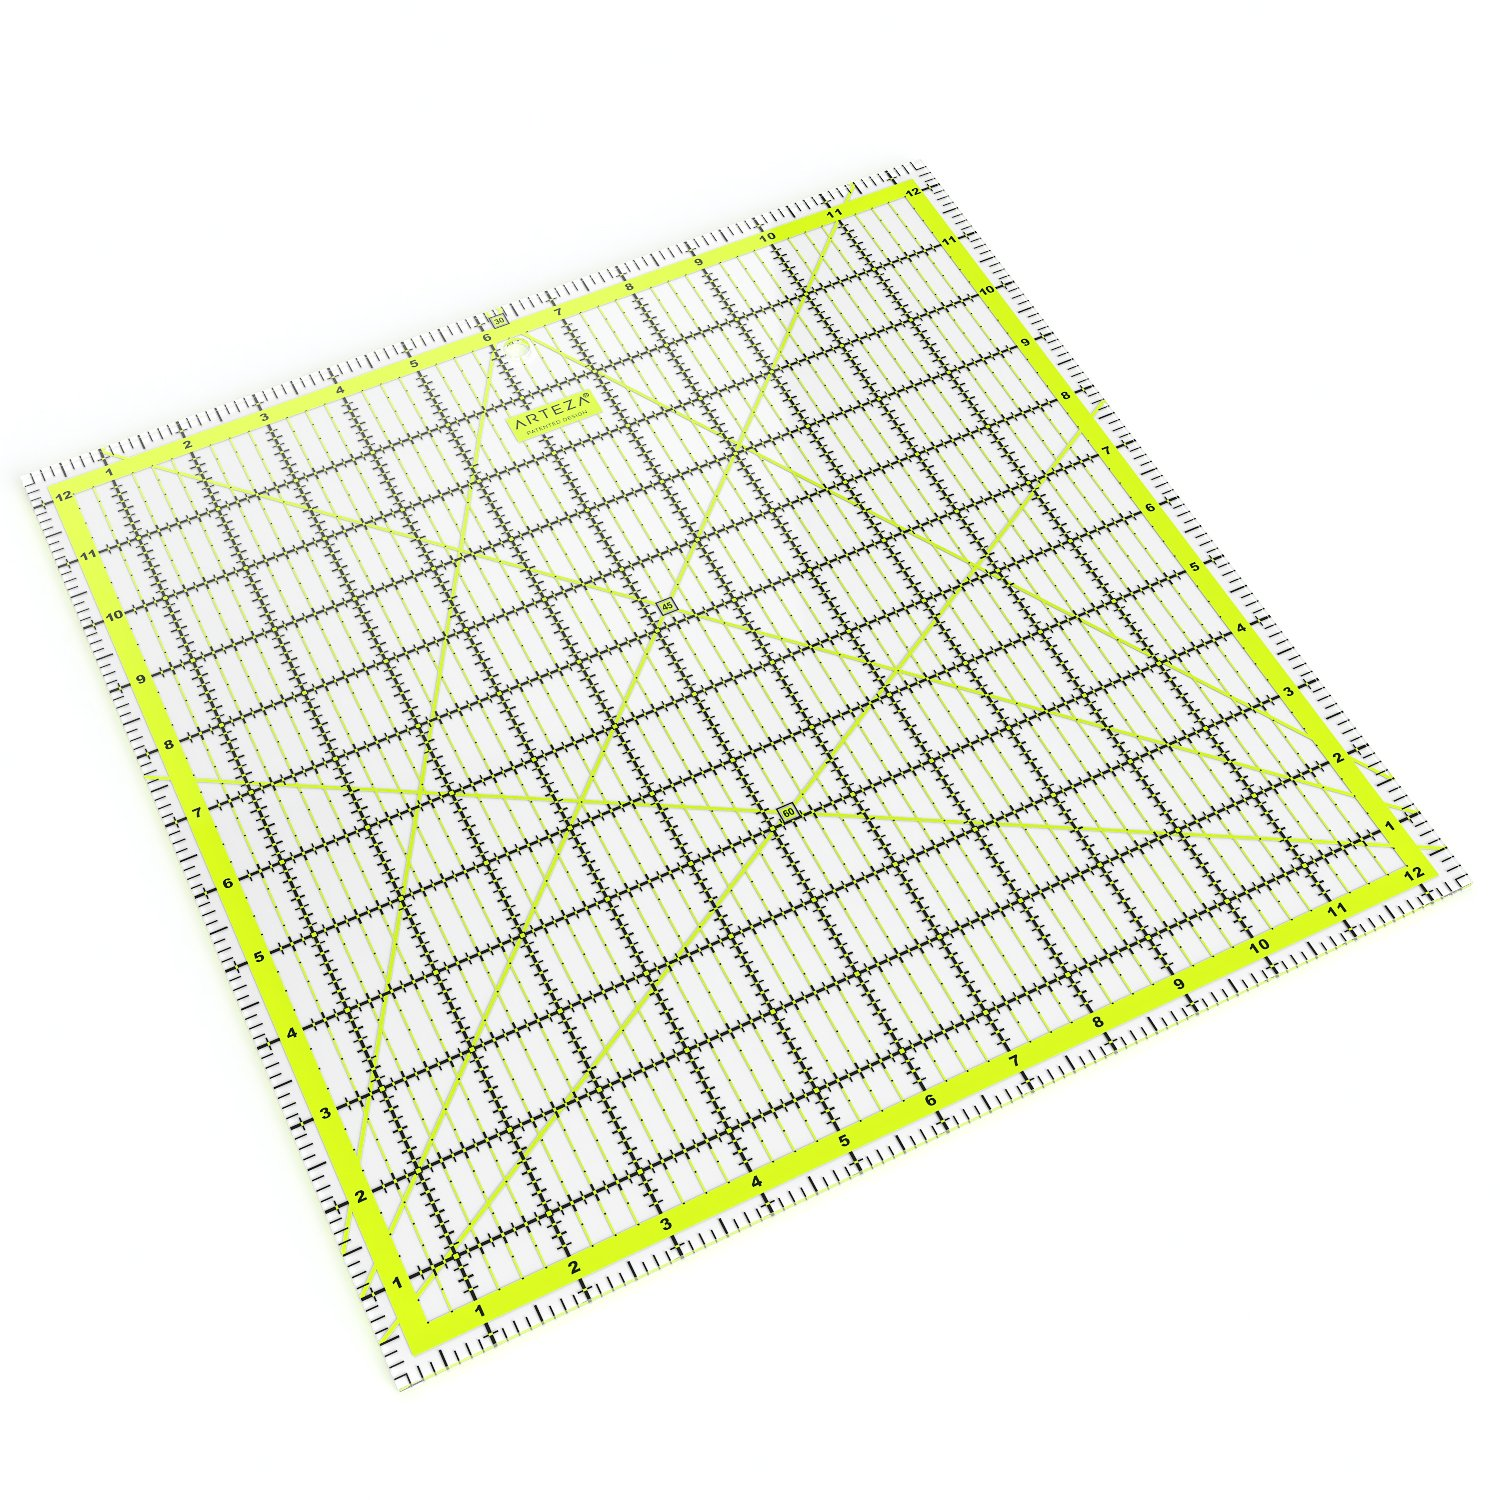 Laser Cut Acrylic Quilters Ruler with Patented Double Colored Grid Lines for Easy Precision Cutting Black /& Lime Green Sewing /& Crafts 12.5 Wide x 12.5 Long for Quilting ARTEZA Quilting Ruler